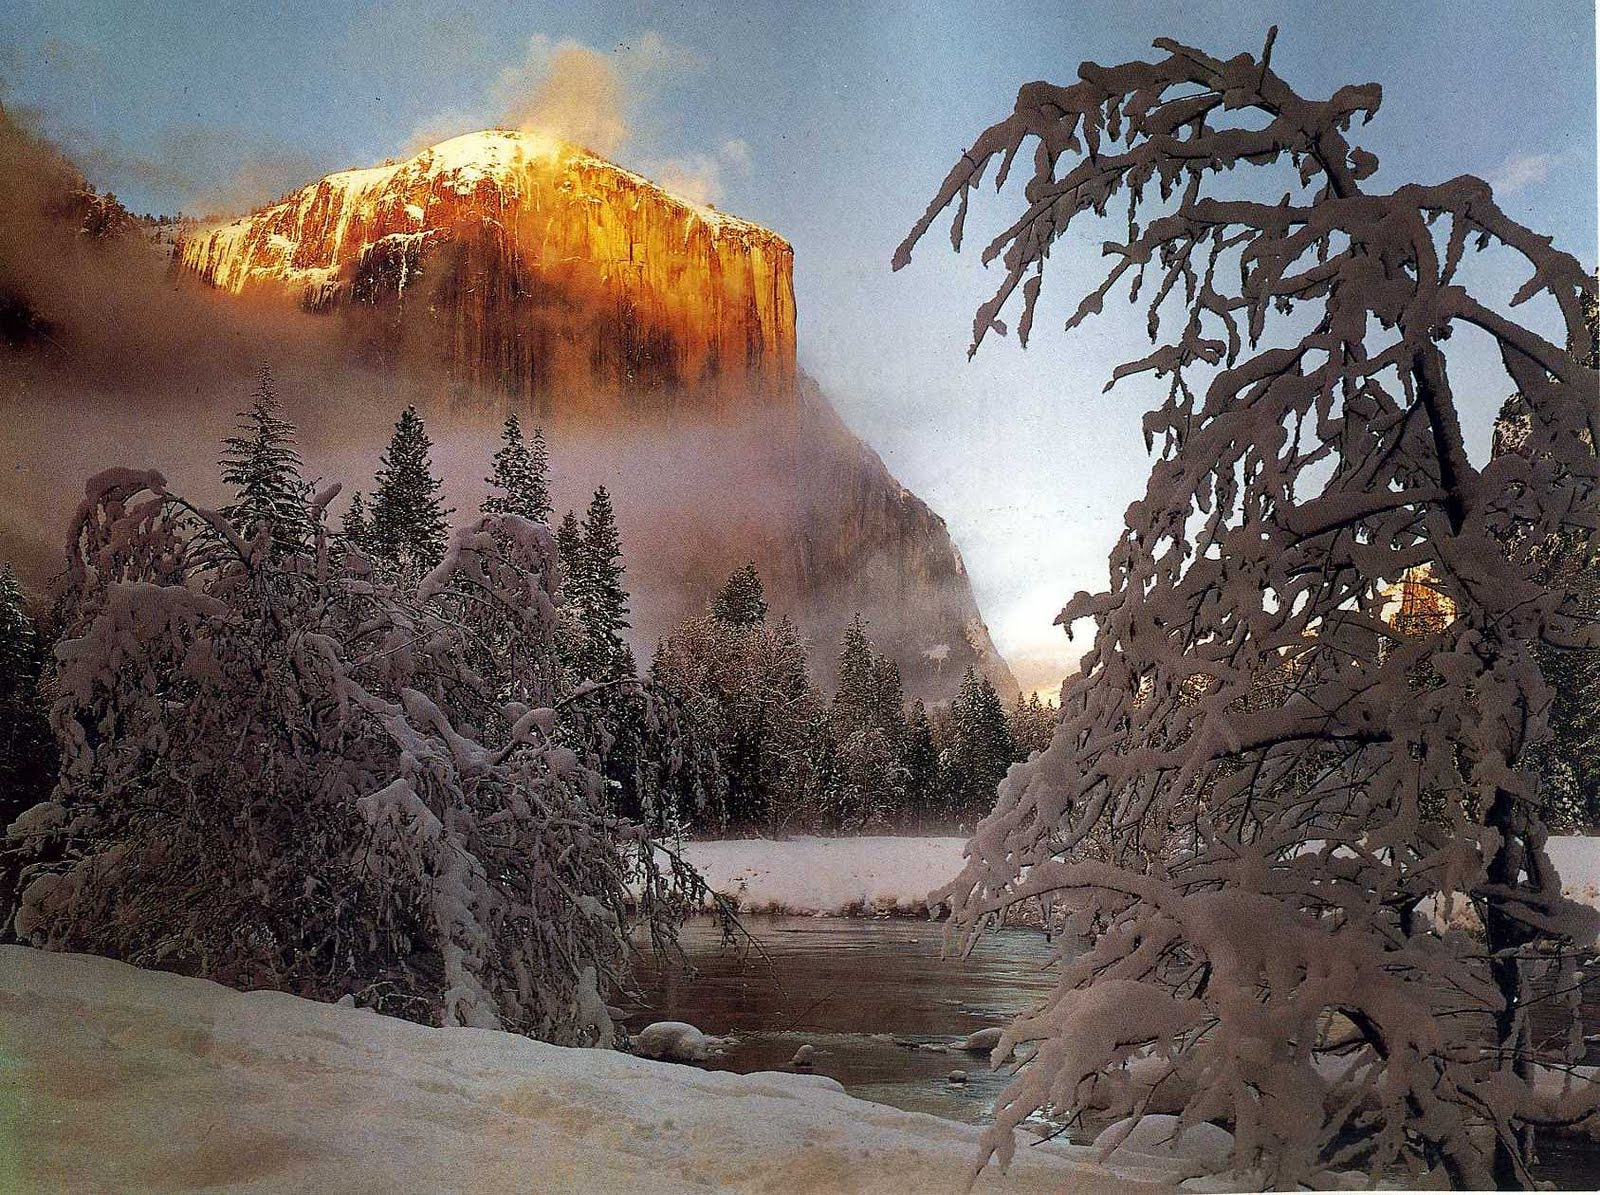 muench david marc photographers landscape yosemite thephotographyfiles valley nature browsing saved